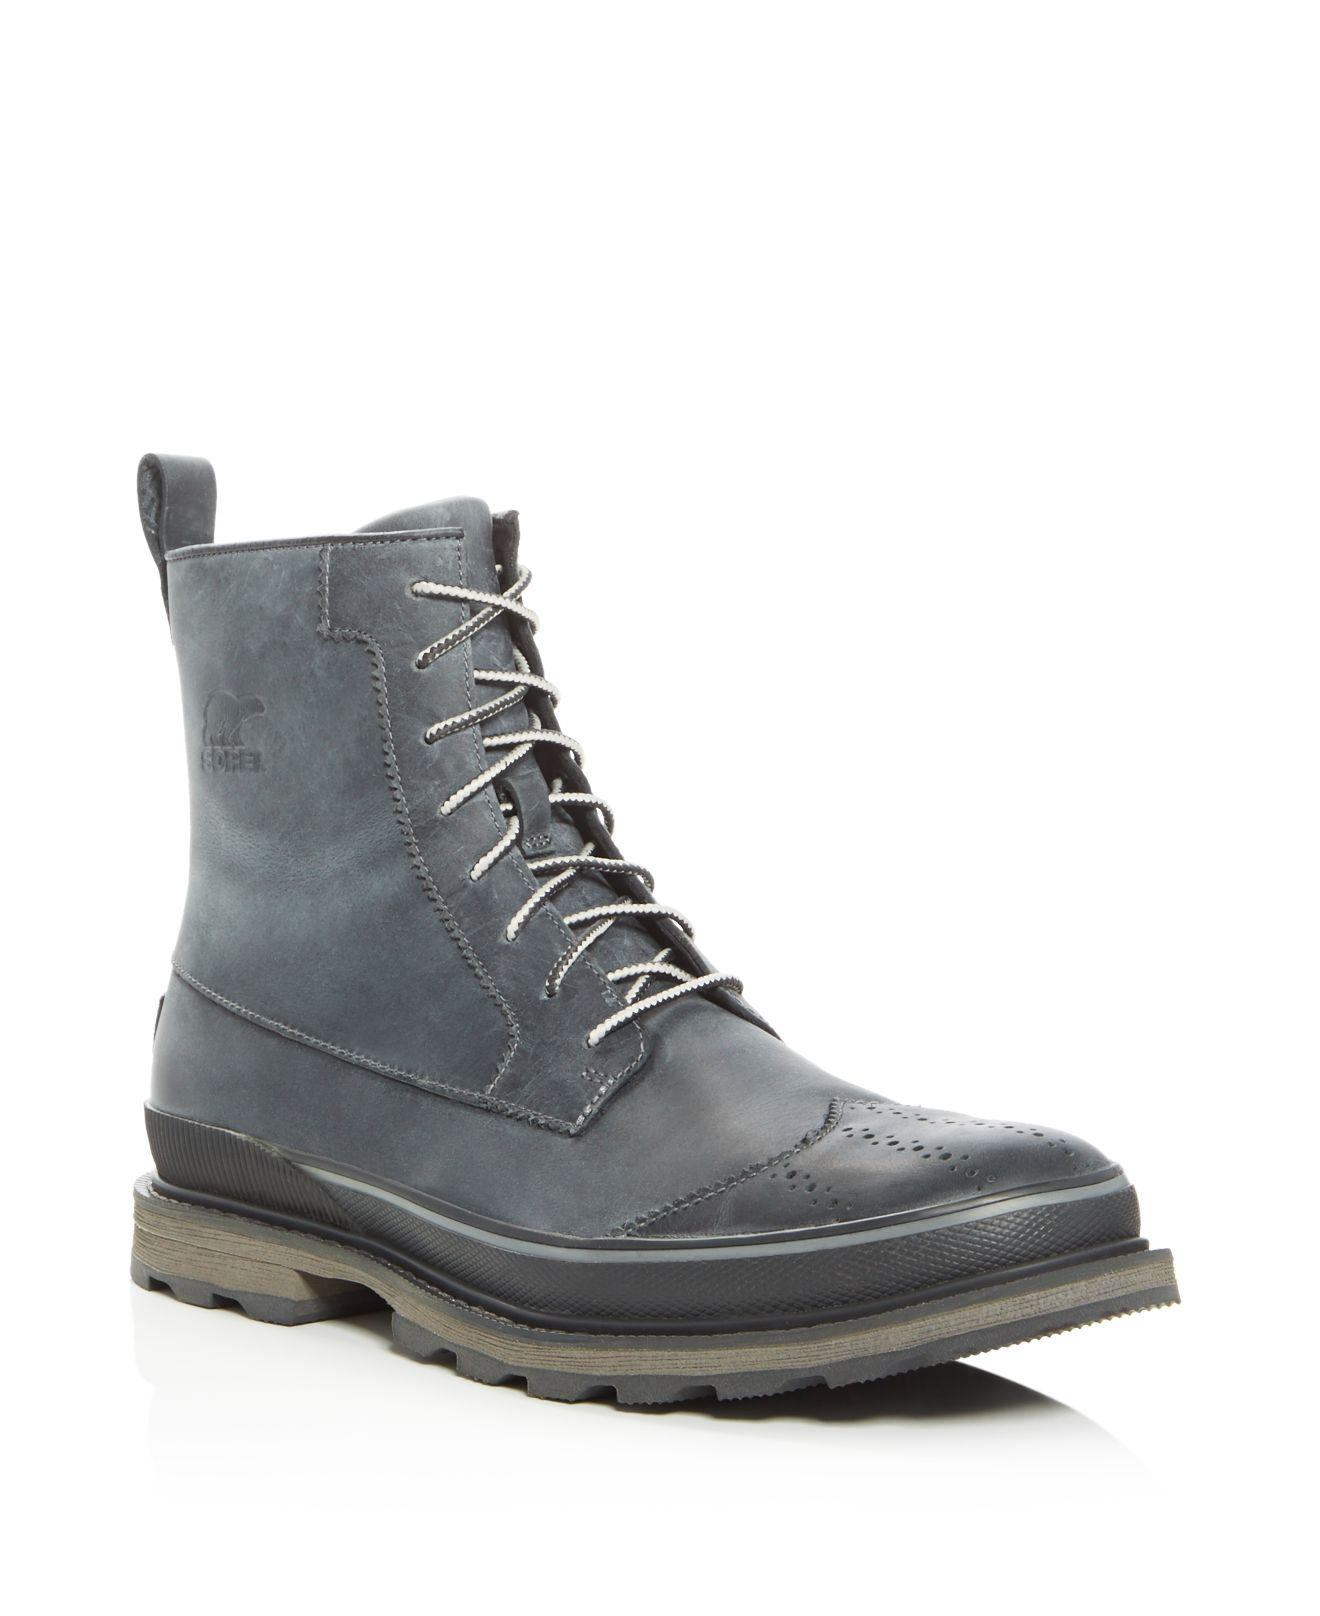 Sorel Leather Madson Wingtip Boots in